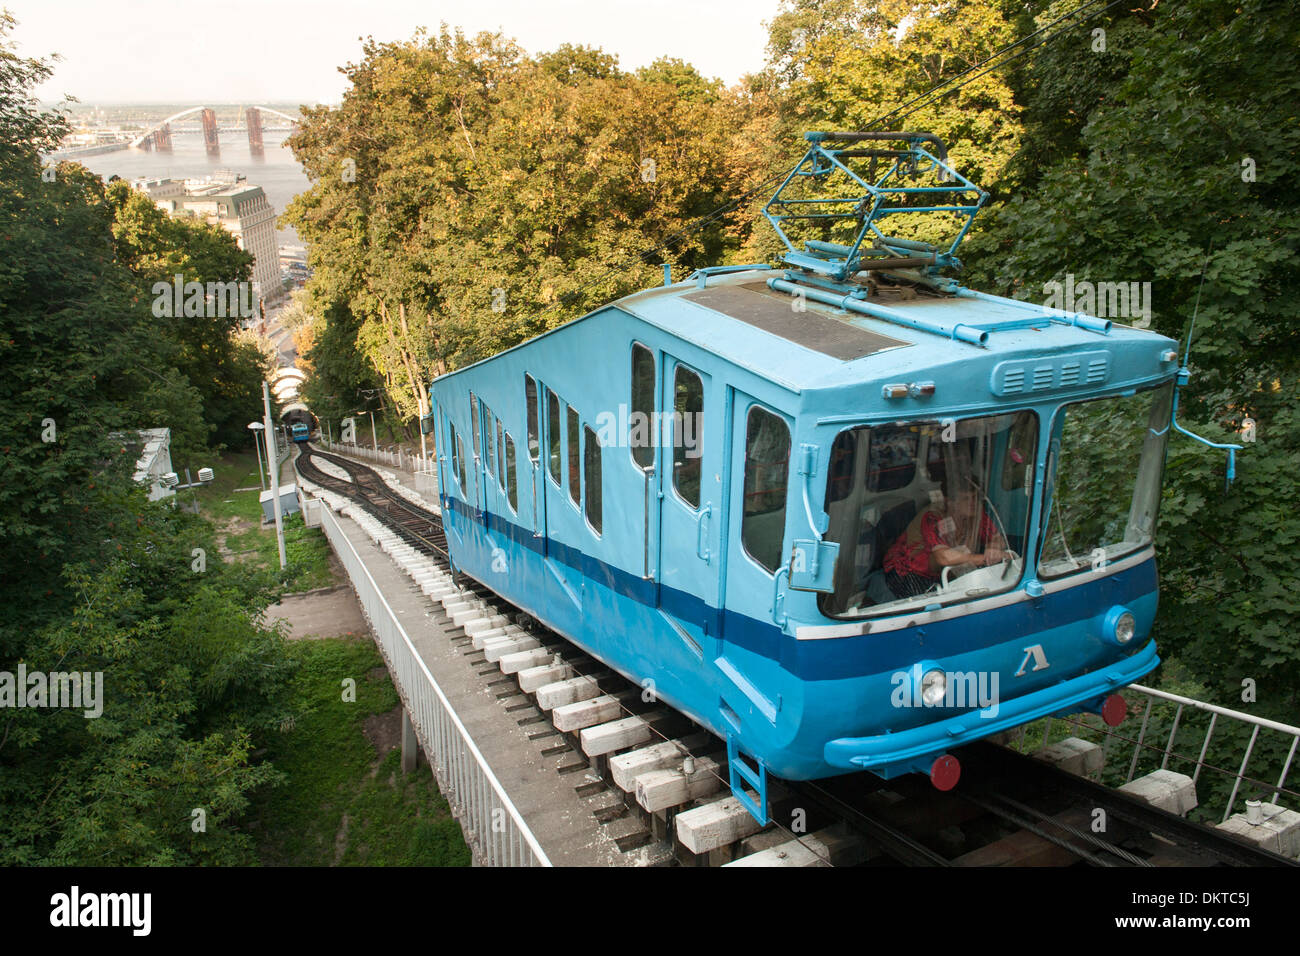 The Kiev funicular connecting the historic Uppertown and the lower commercial neighborhood of Podil in Kiev, capital of Ukraine. - Stock Image